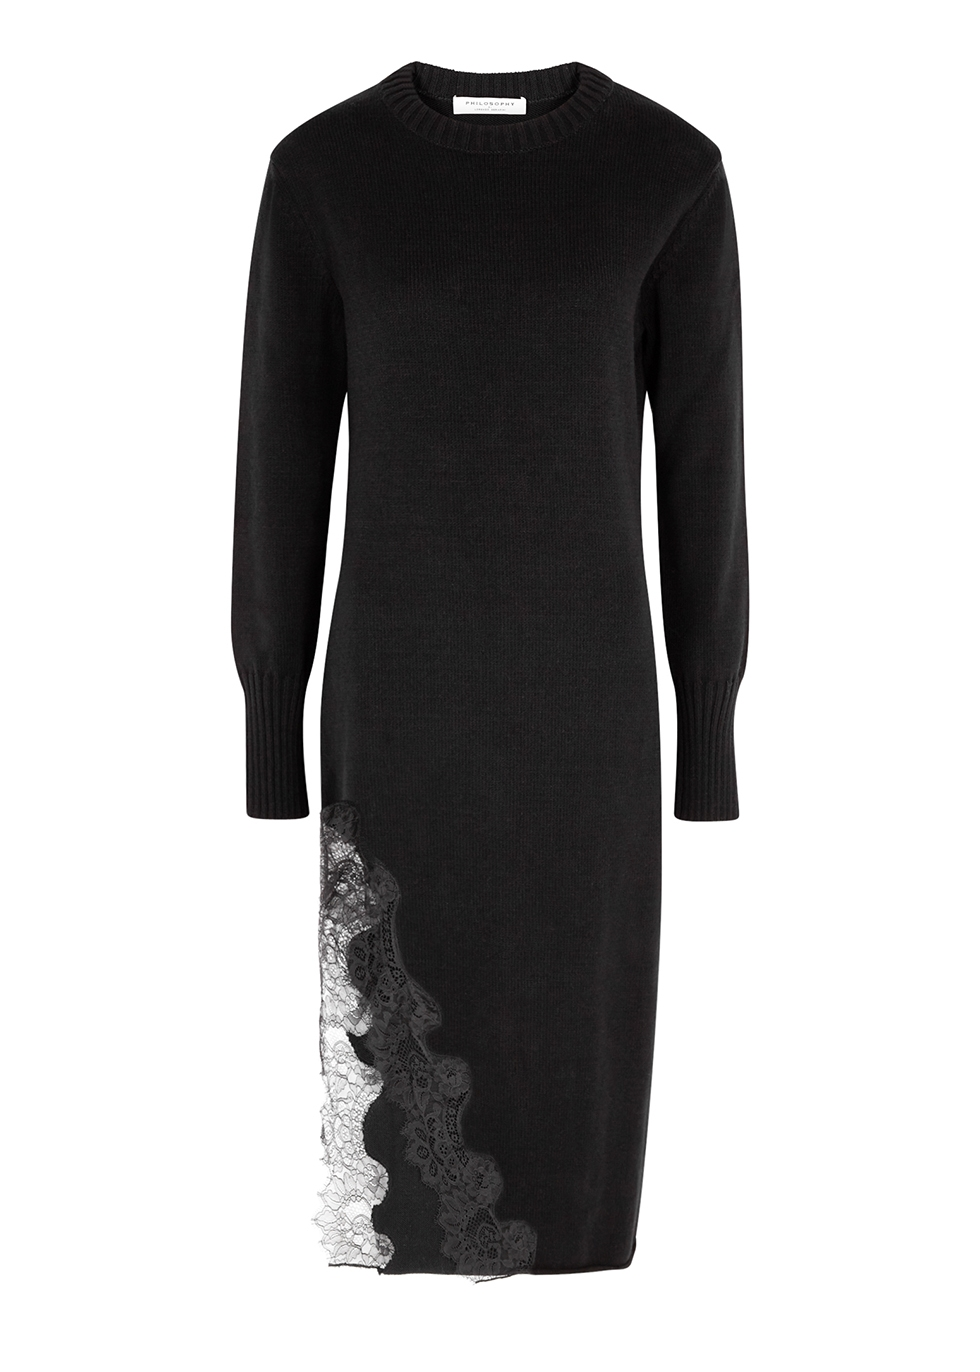 Black lace-trimmed cotton-blend jumper dress